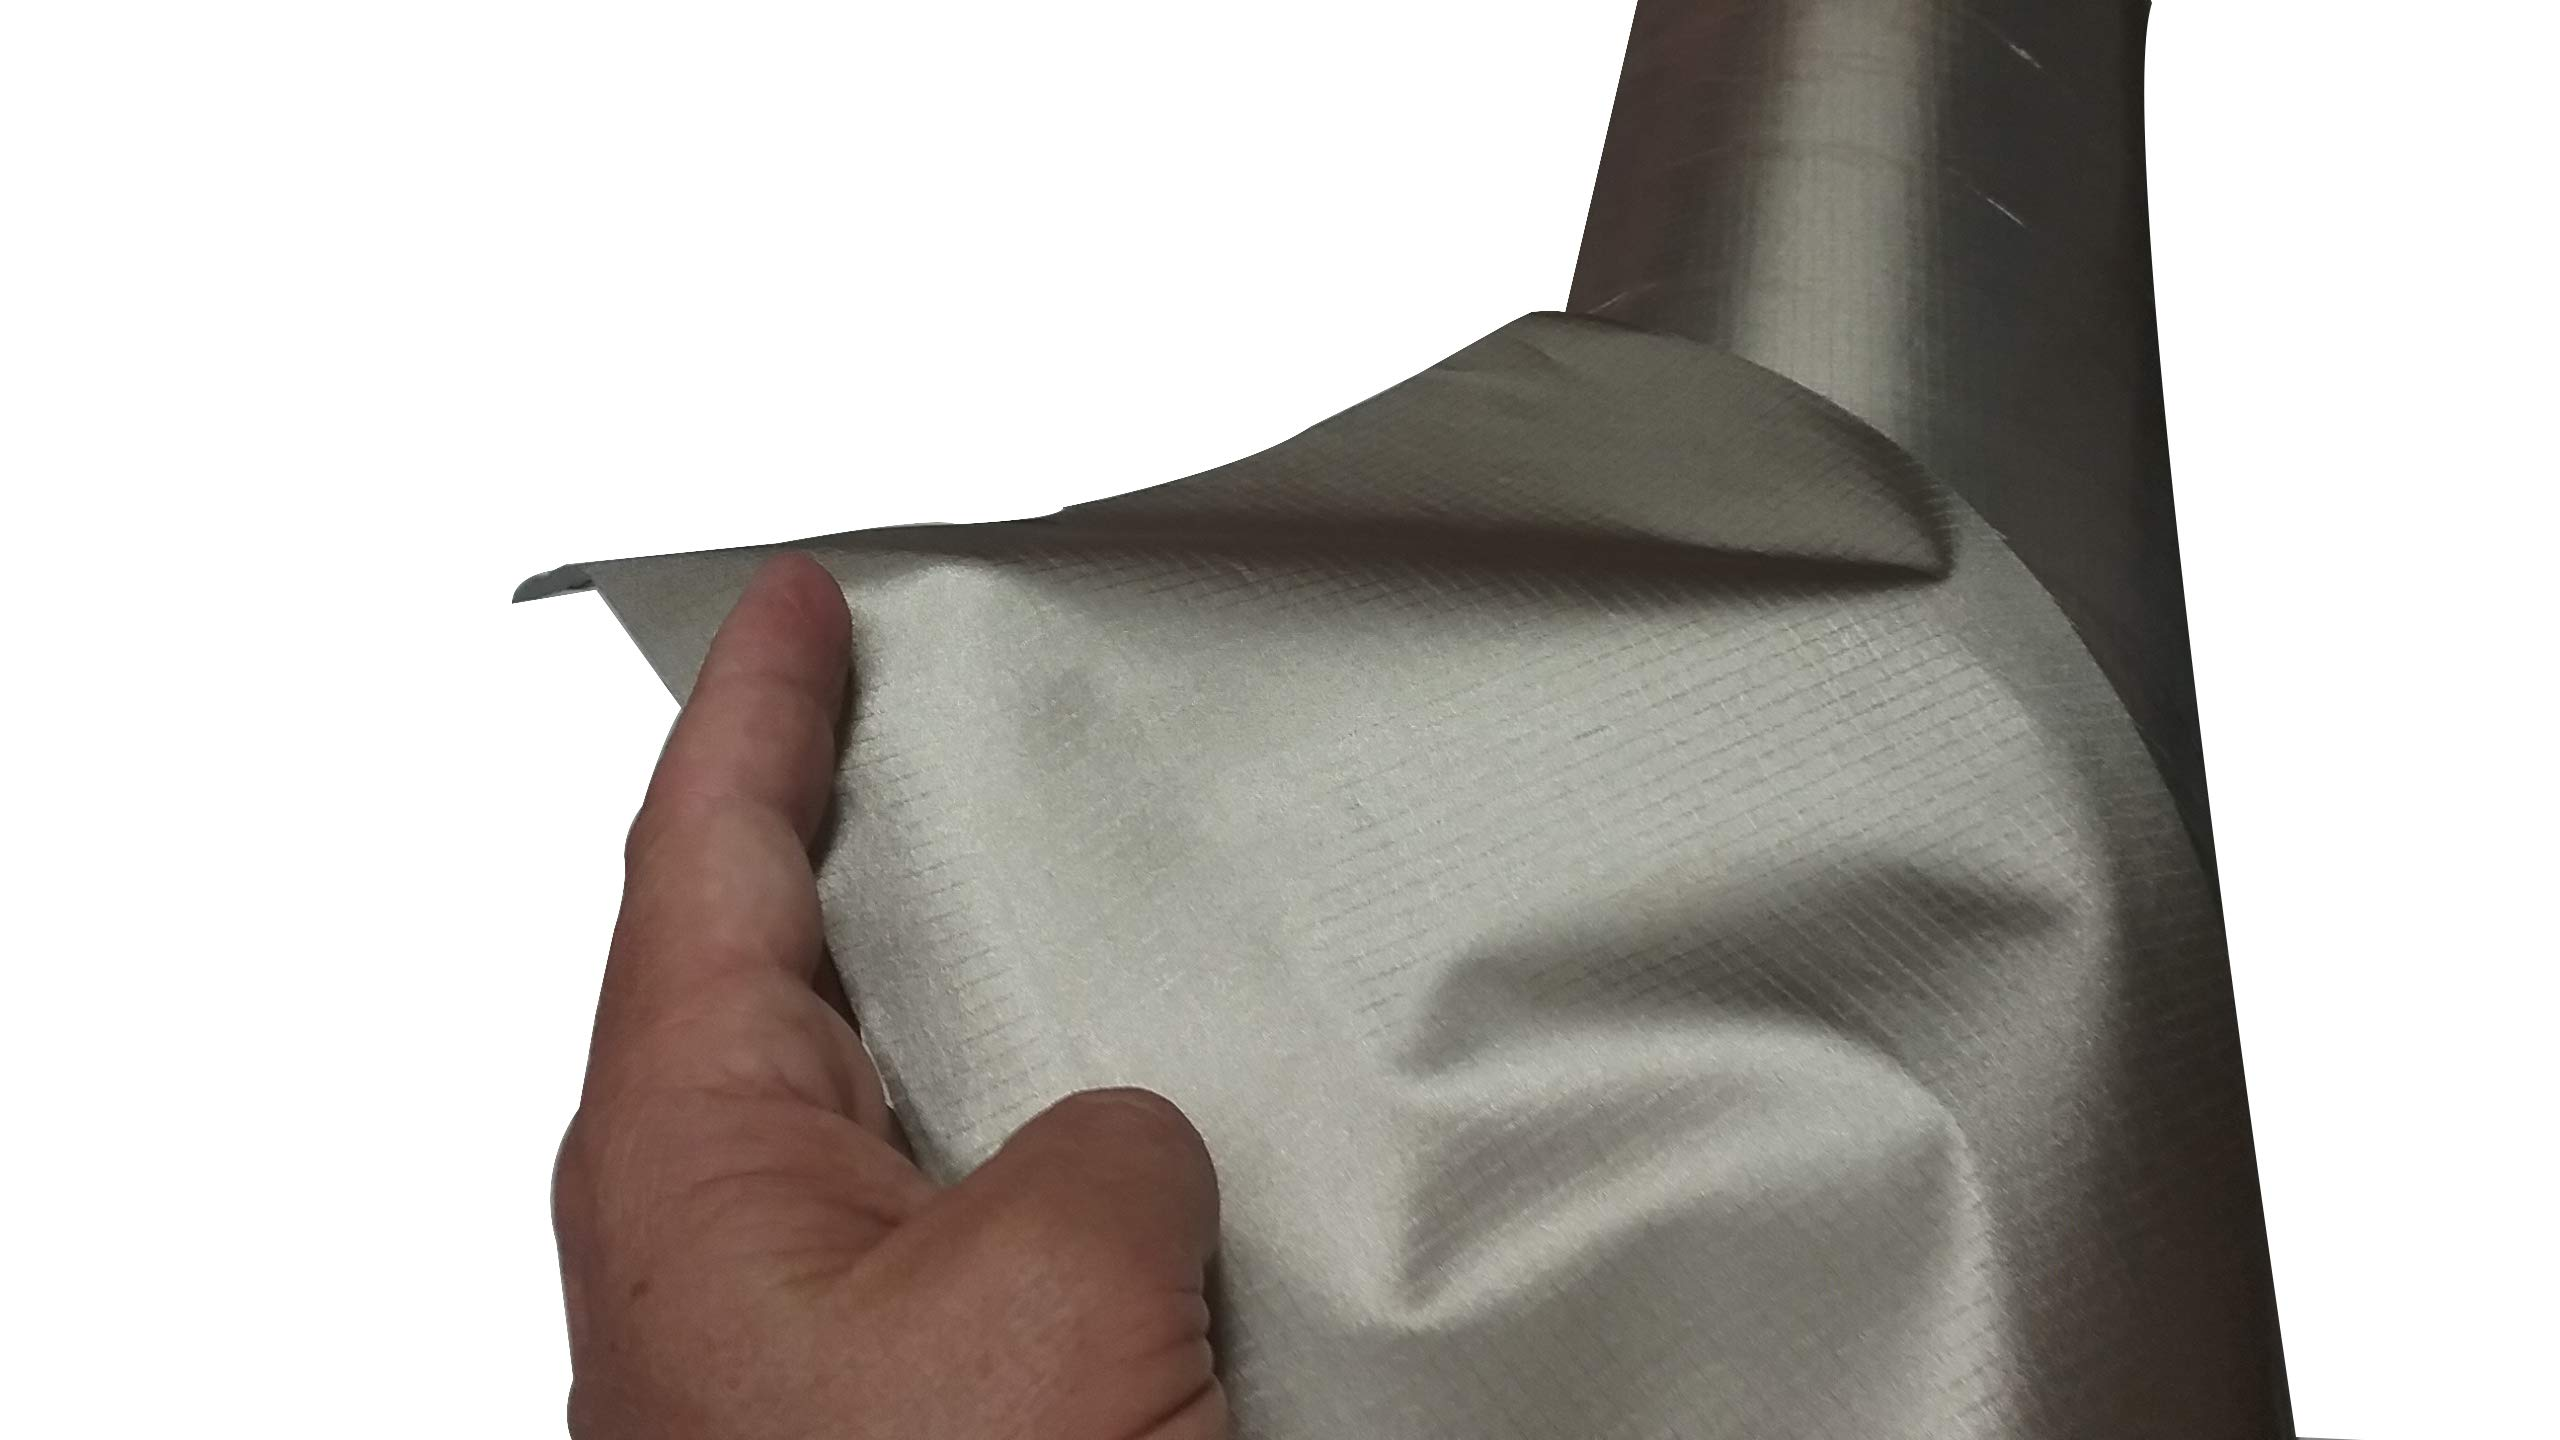 Sticky Copper/RPET/Nickel Coated Electrically Conductive Fabric RFID Shielding (1 Linear Foot)